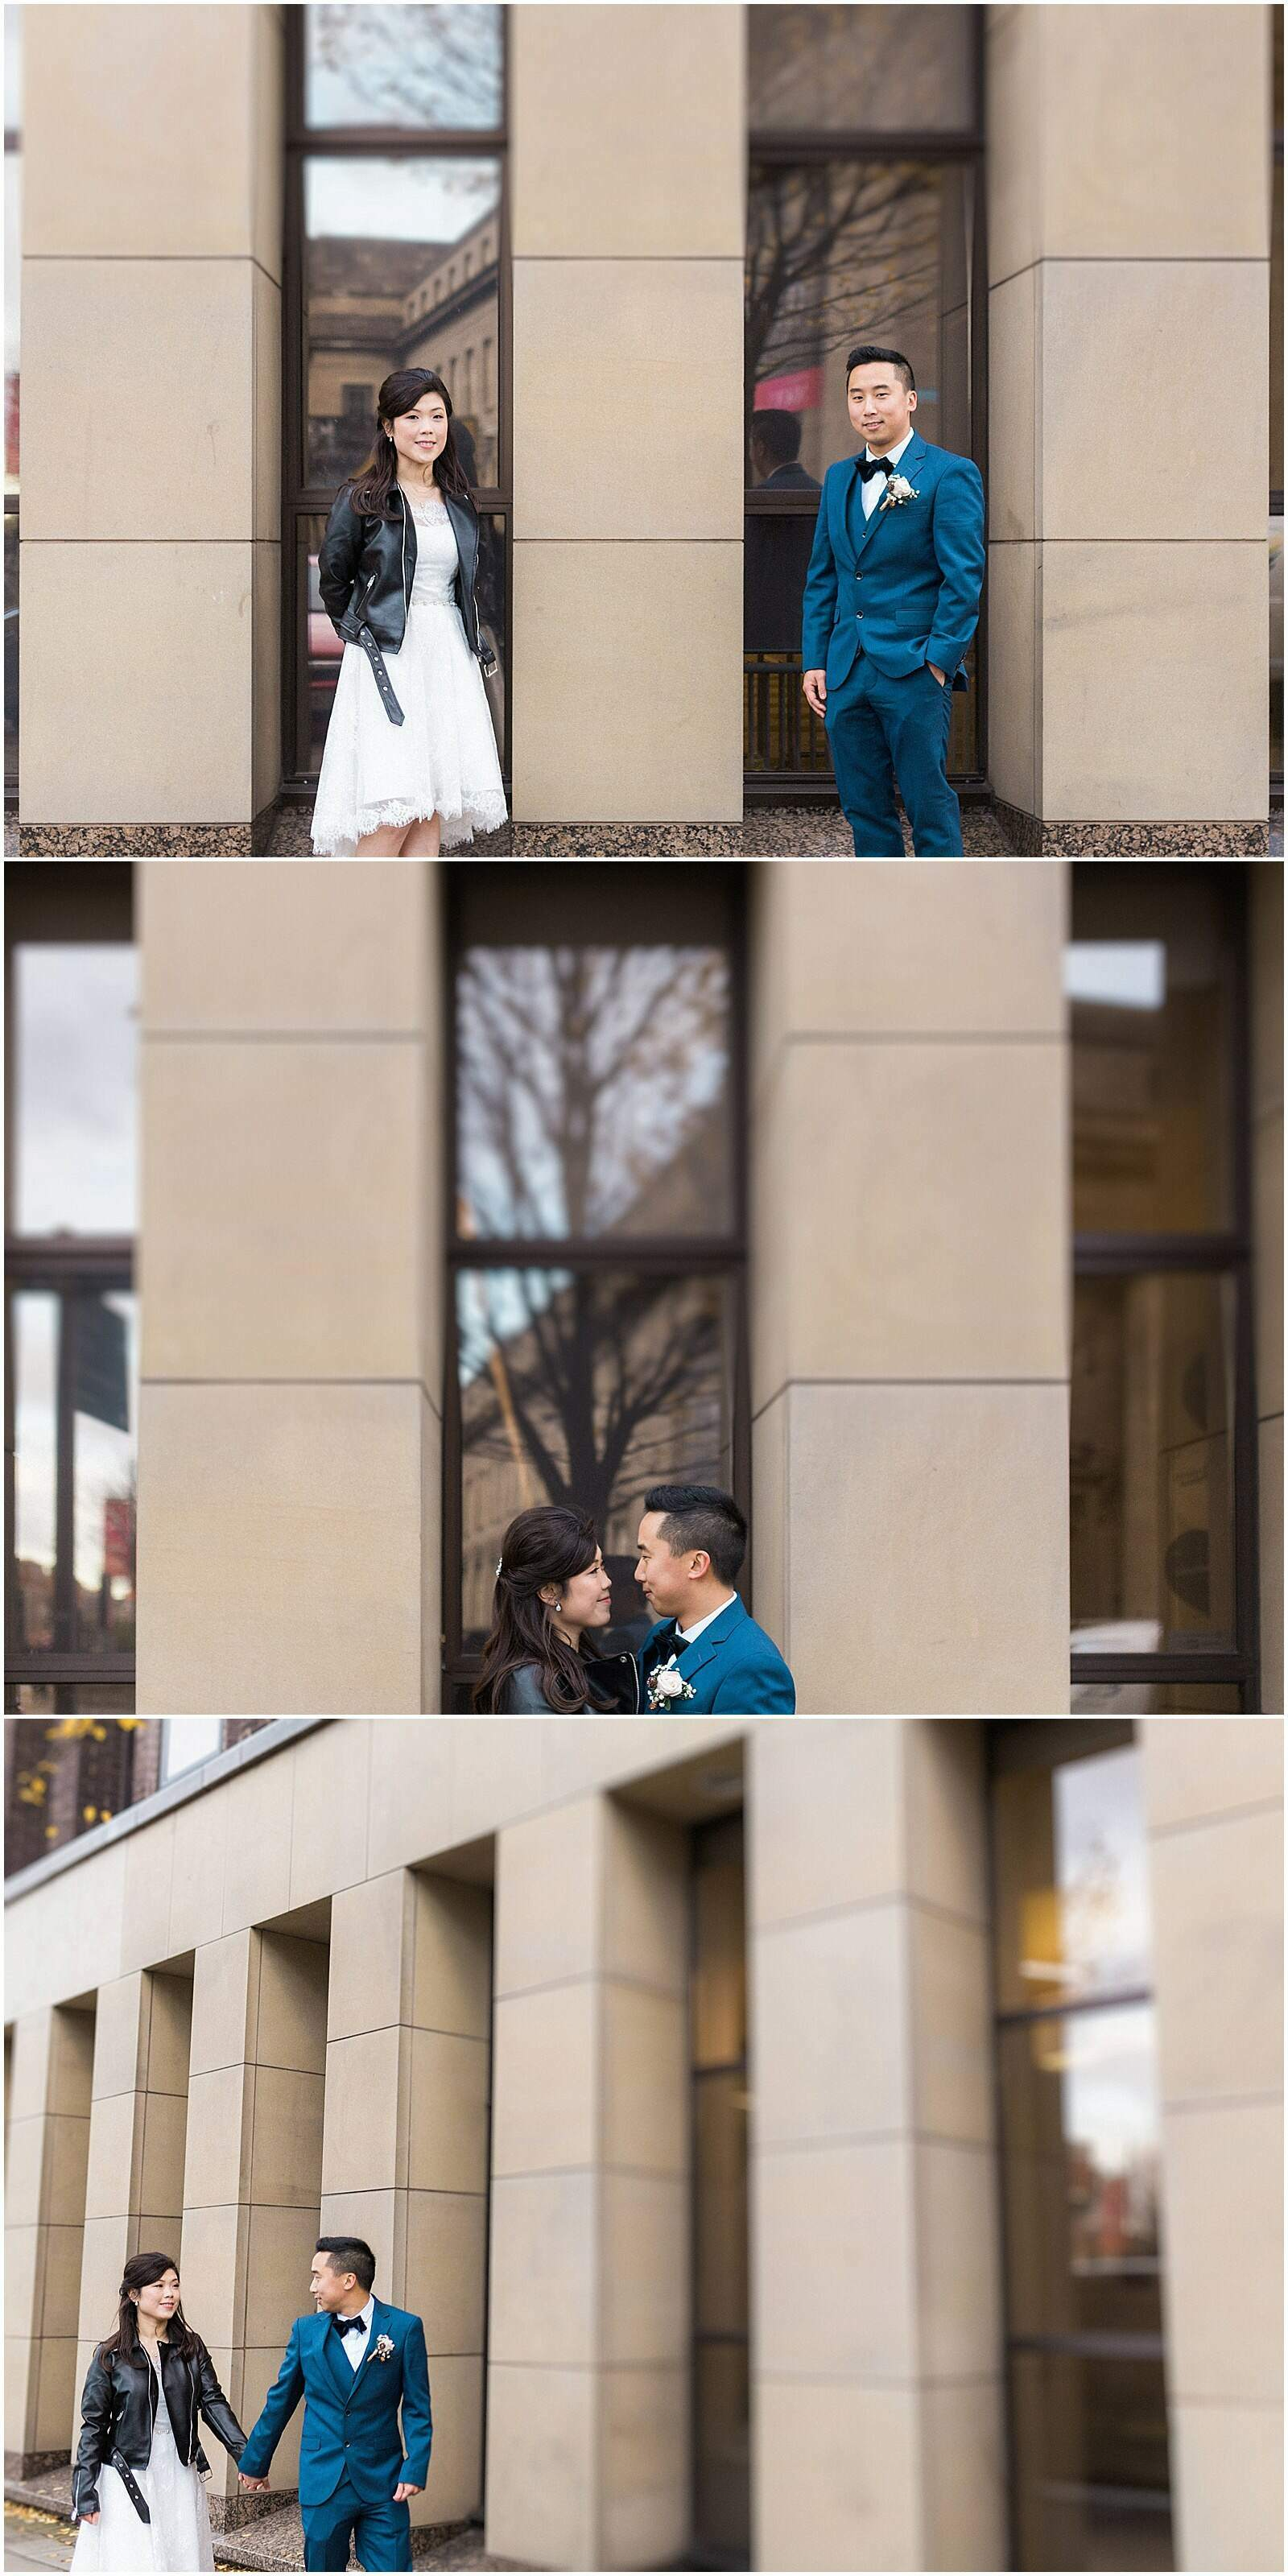 Sandy + Shekman - Elopement in Dublin City 17